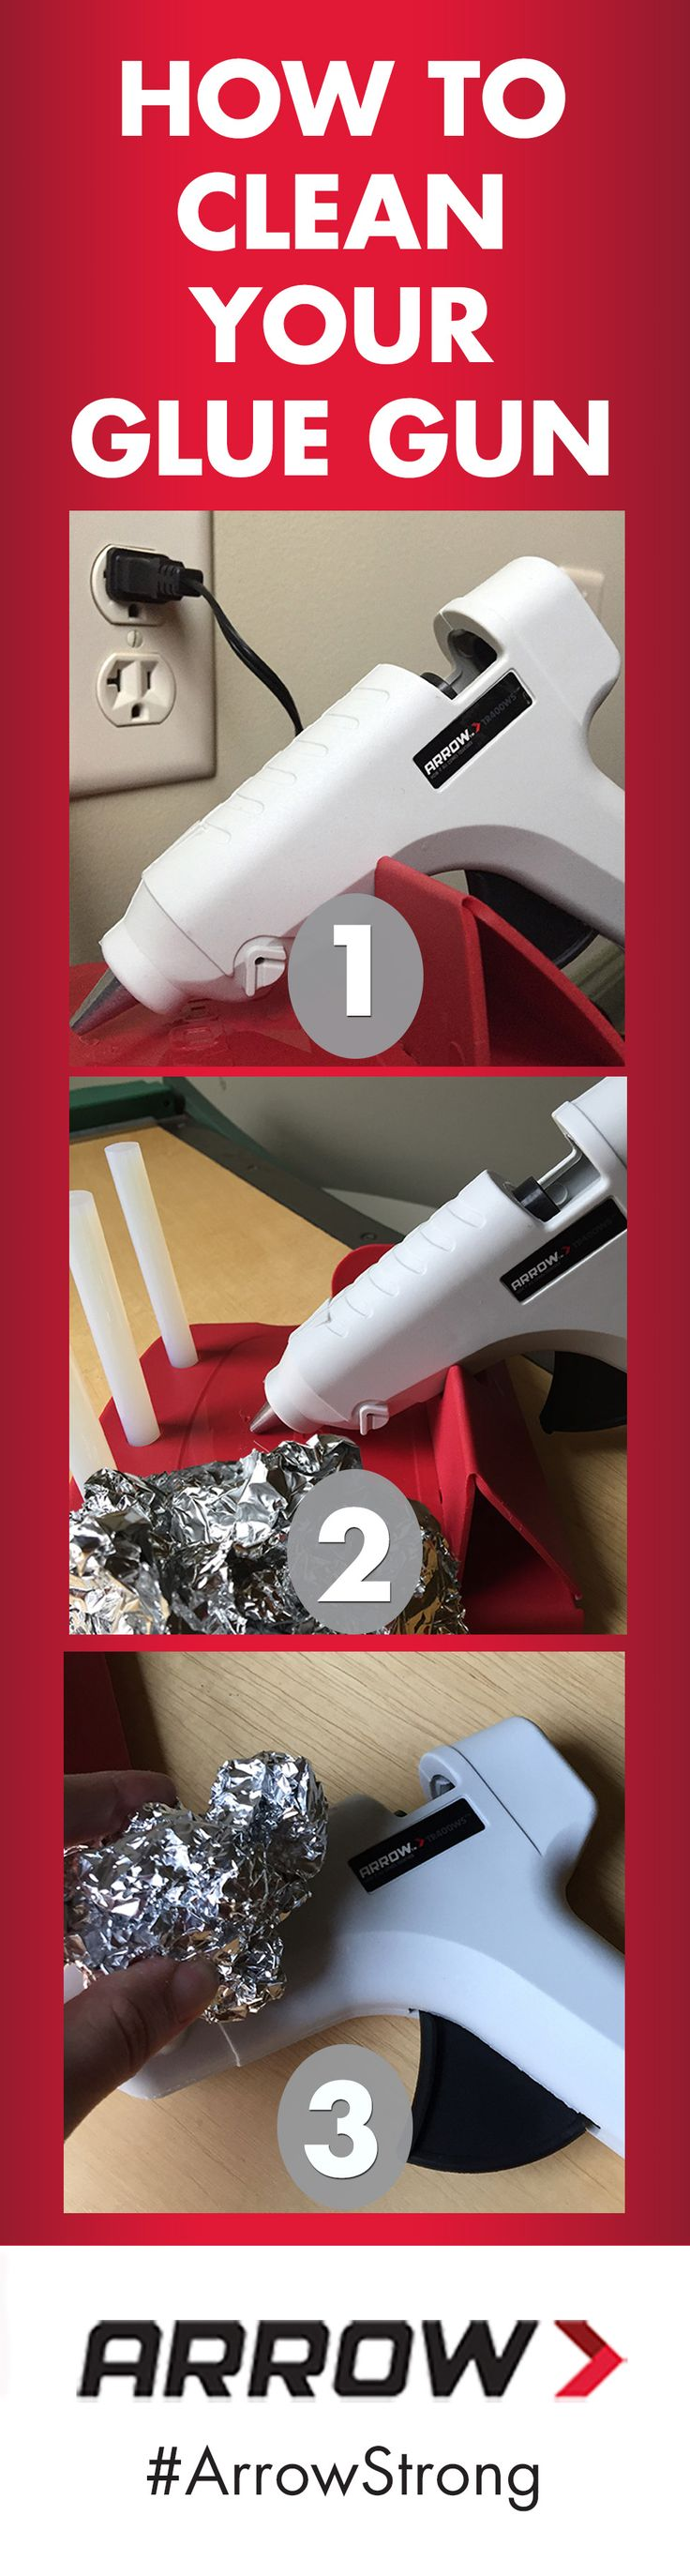 How To Clean Your Glue Gun: First, plug in your glue gun and let it warm up. Next, crumple some aluminum foil into a ball. Finally, use aluminum foil to scrub the body and nozzle of your glue gun. Follow Arrow Fastener on Pinterest for more great tips! www.arrowfastener.com